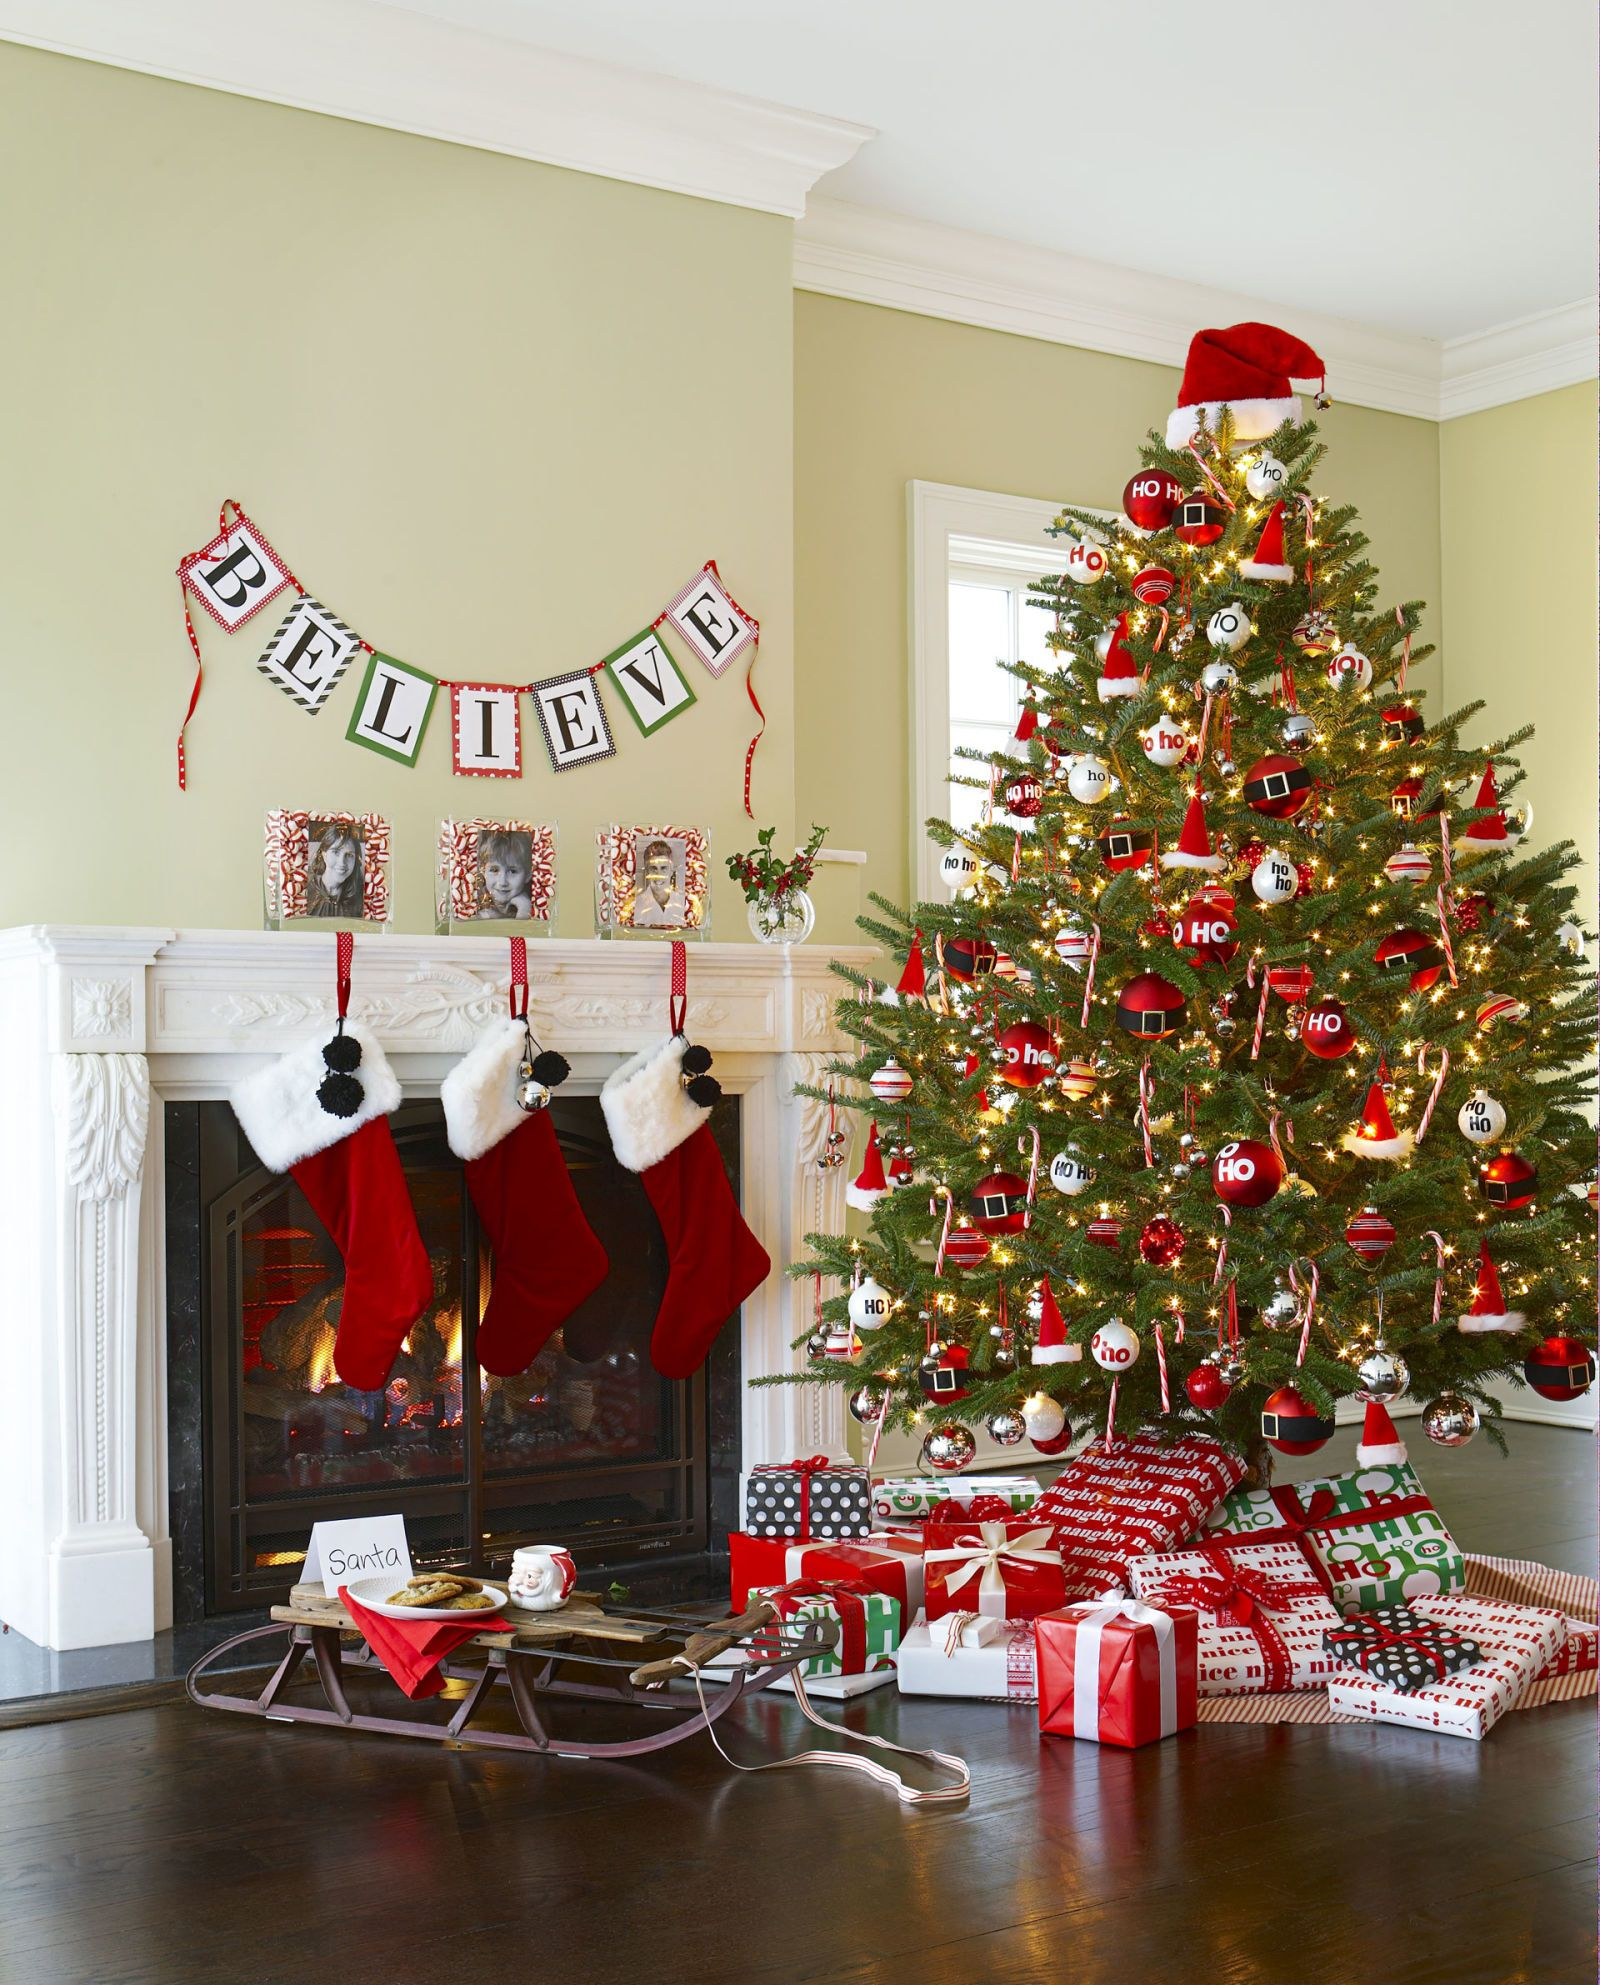 50 Christmas Tree Decoration Ideas - Pictures of Beautiful Christmas Trees a8ec2d9c5